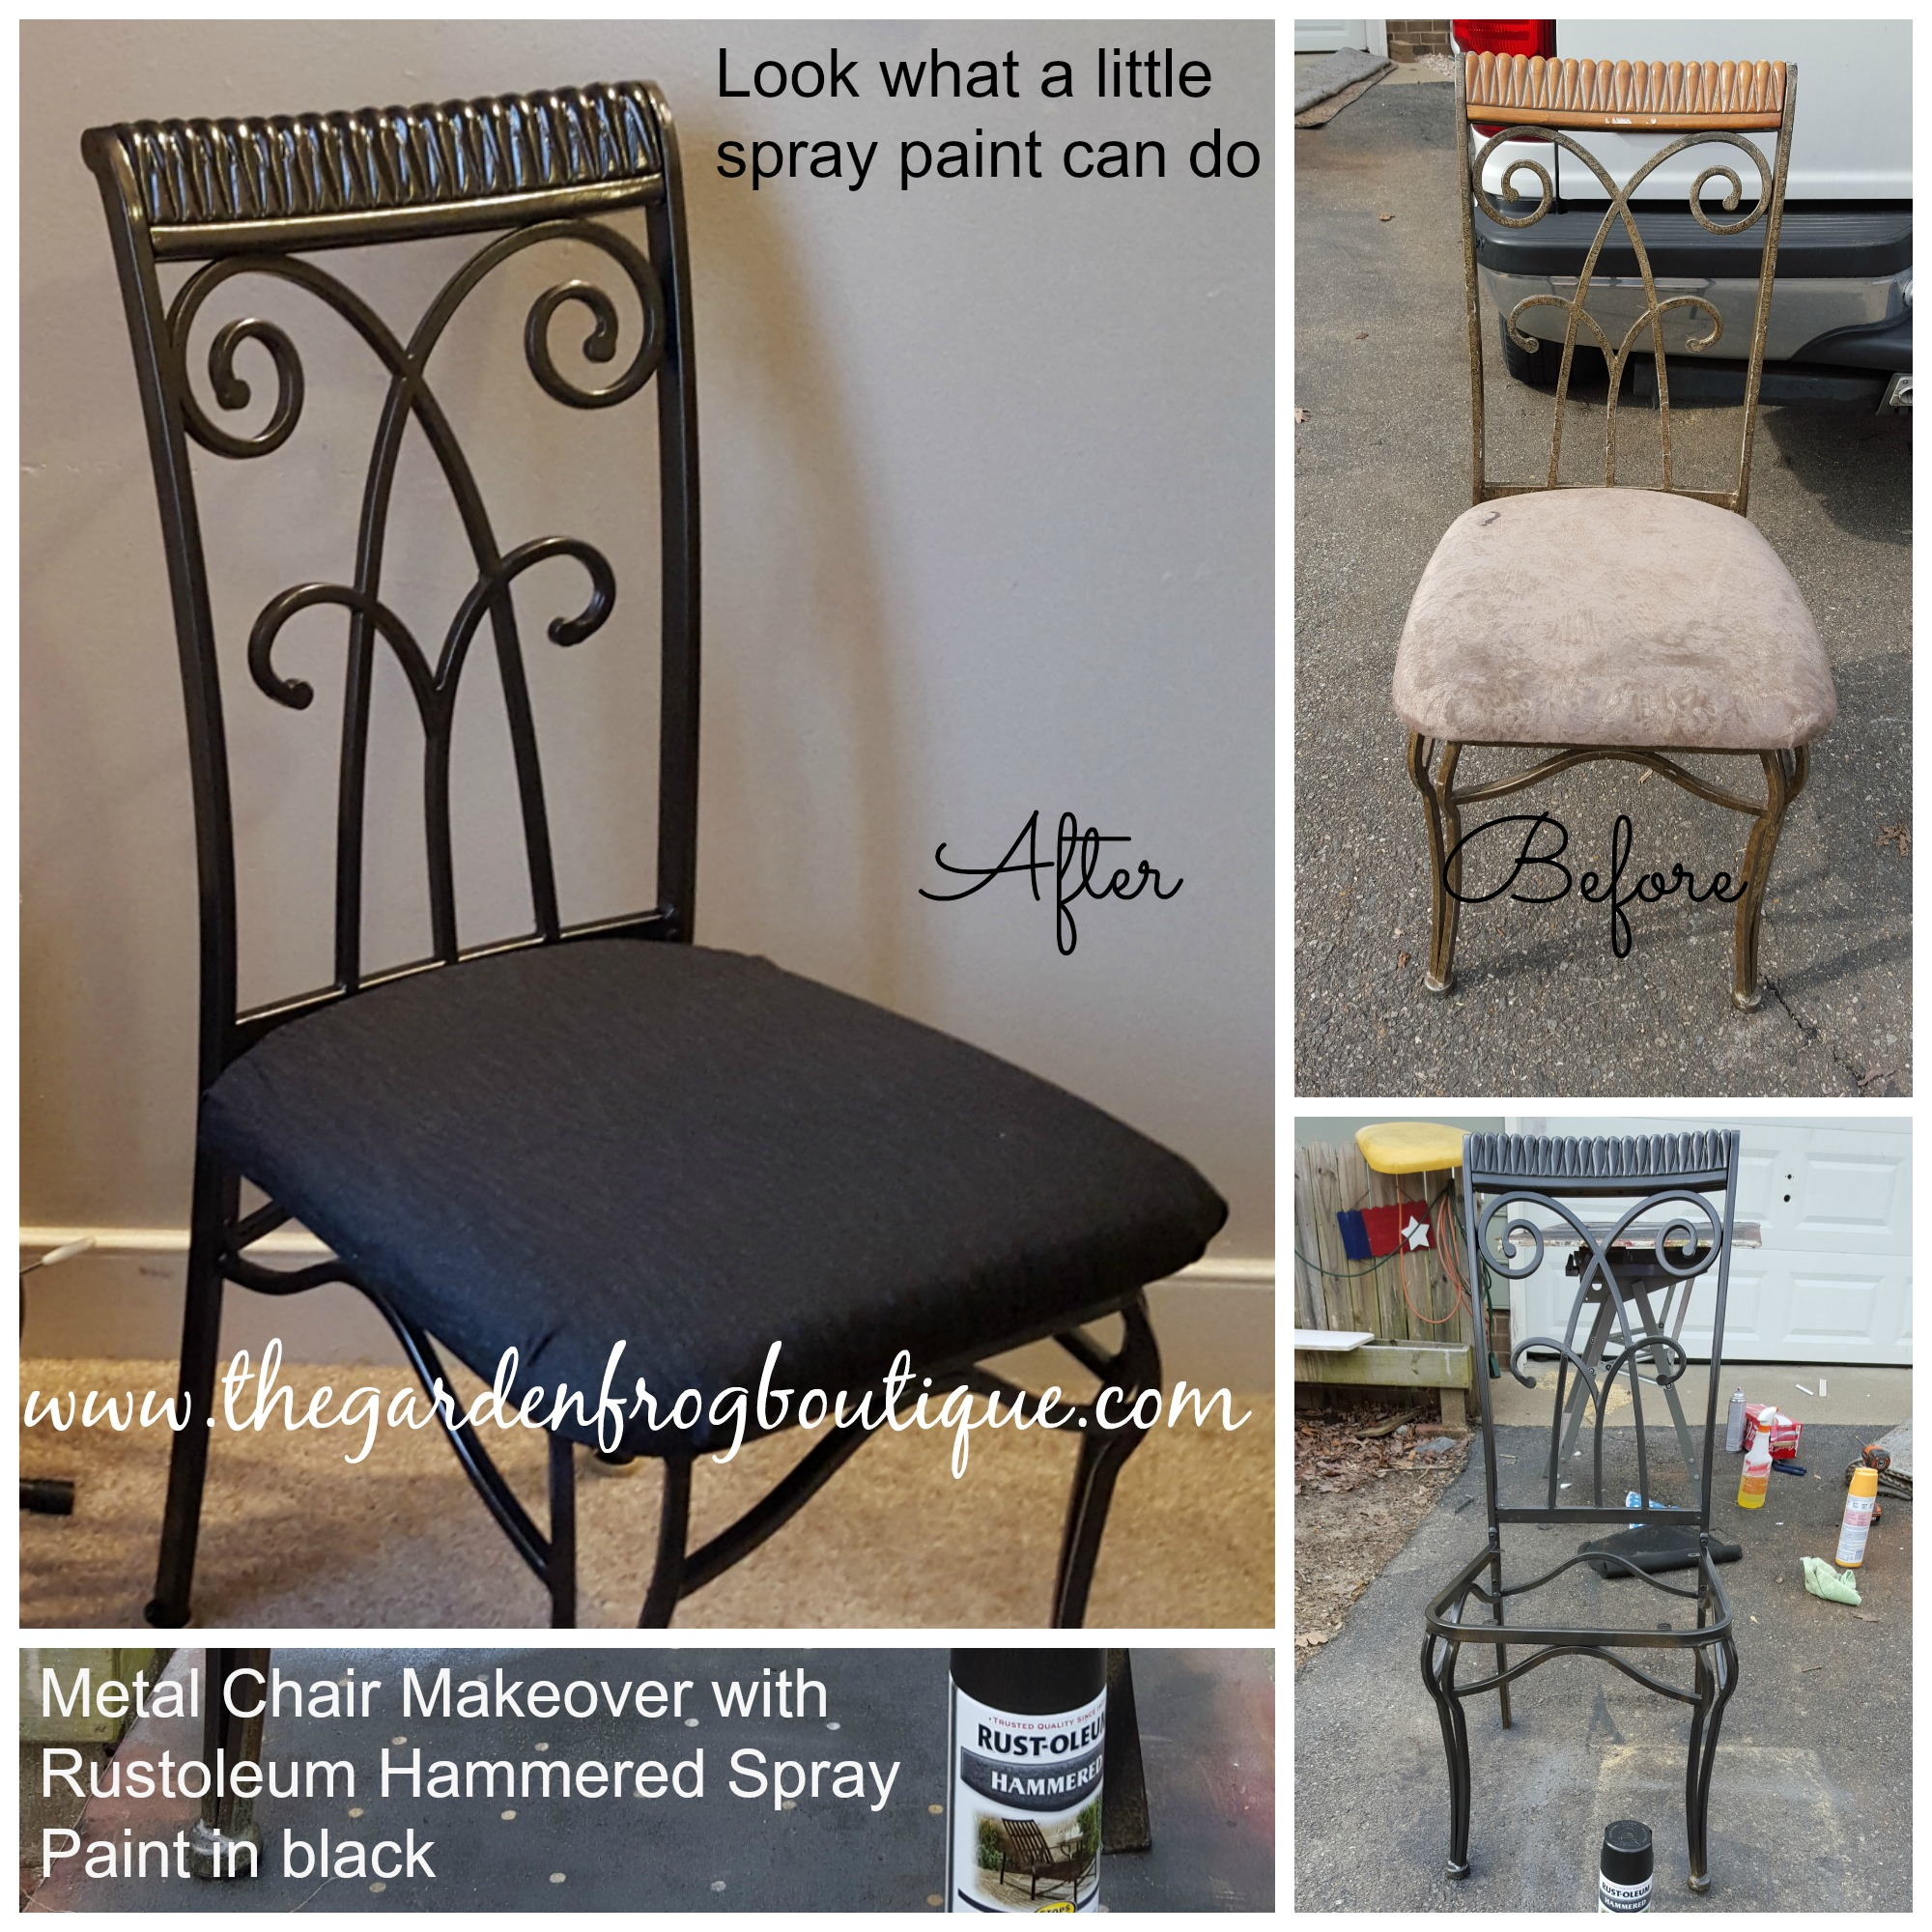 metal chair makeover with rustoleum hammered spray paint the garden. Black Bedroom Furniture Sets. Home Design Ideas